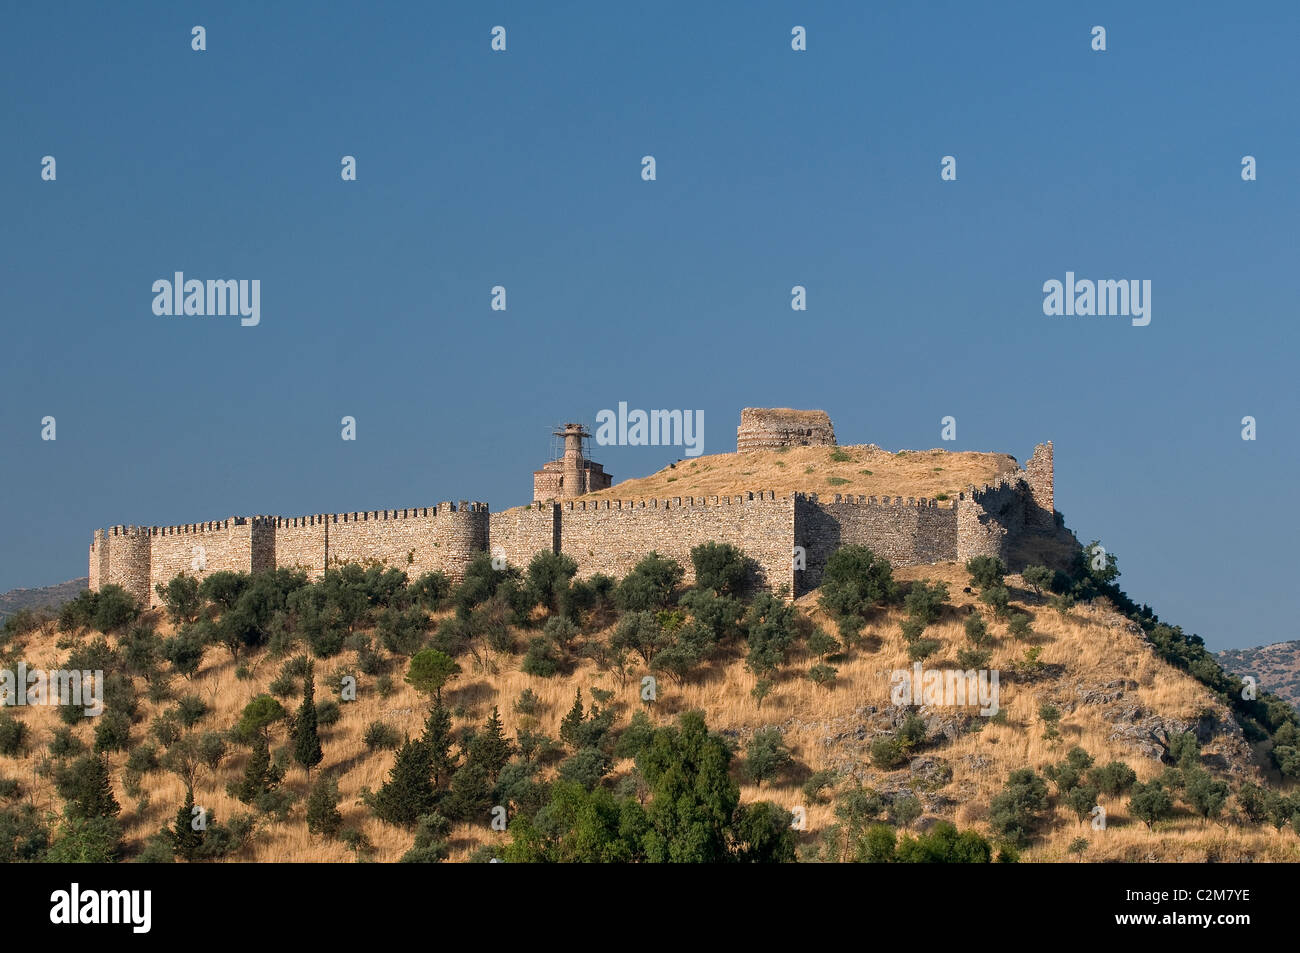 Historical Selcuk Castle Izmir Turkey - Stock Image